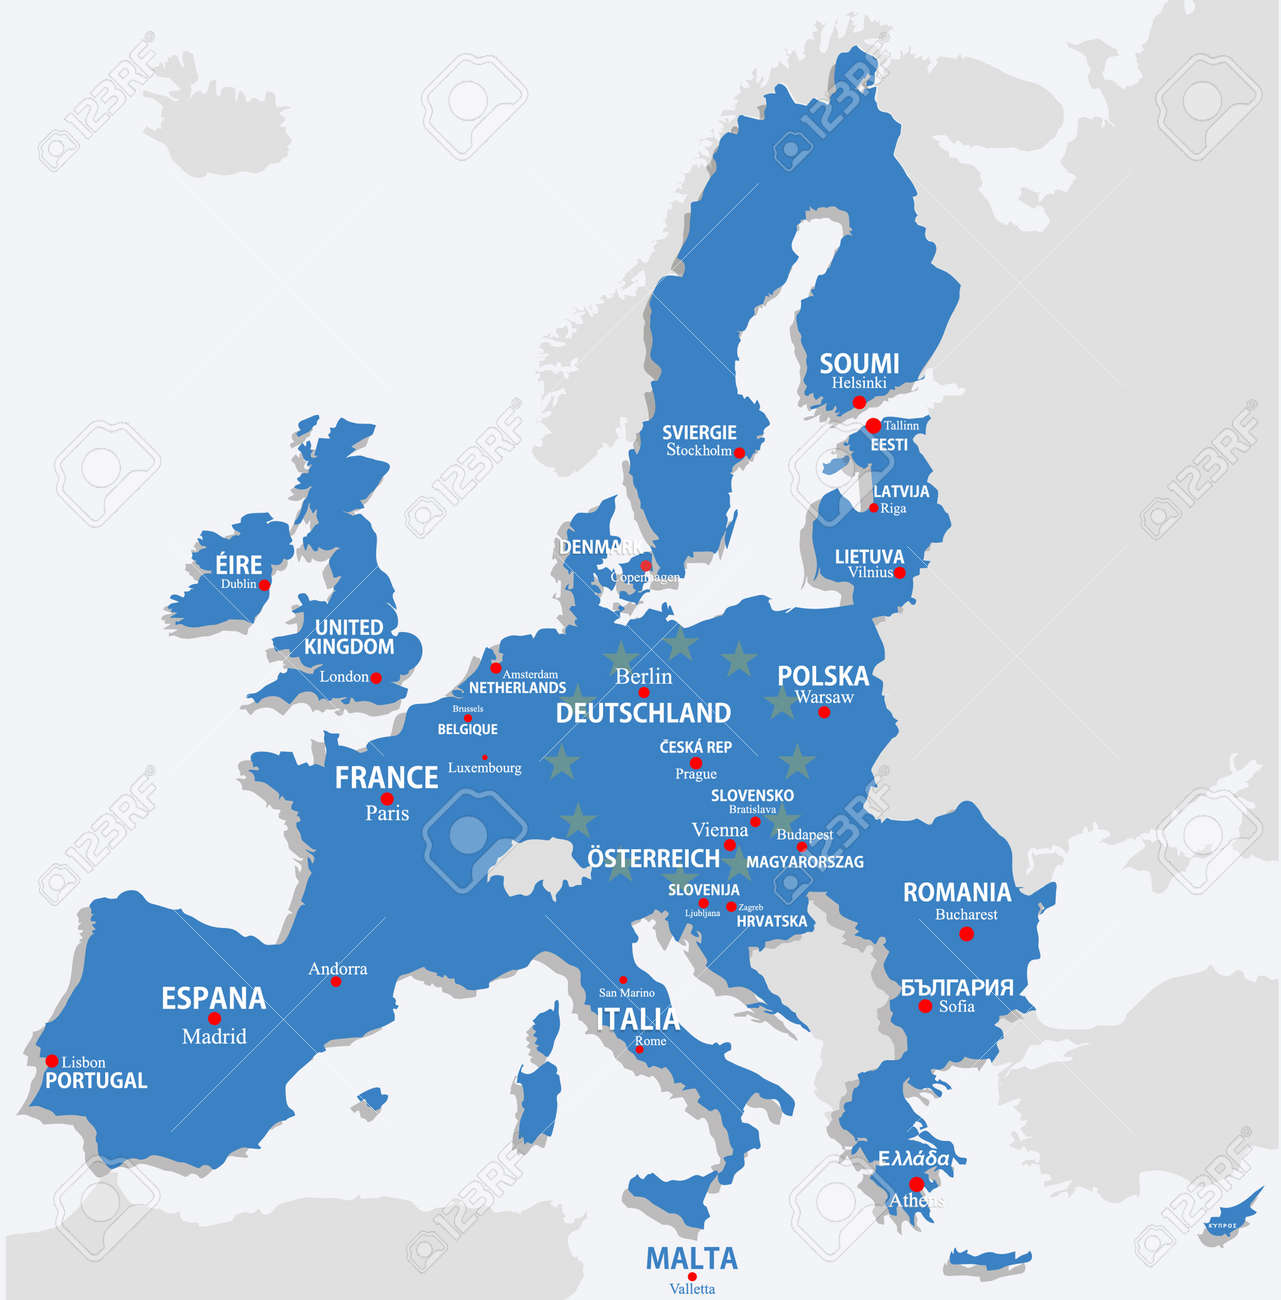 European Union Map With All Europe Countries And Capital Name – Map of All Europe